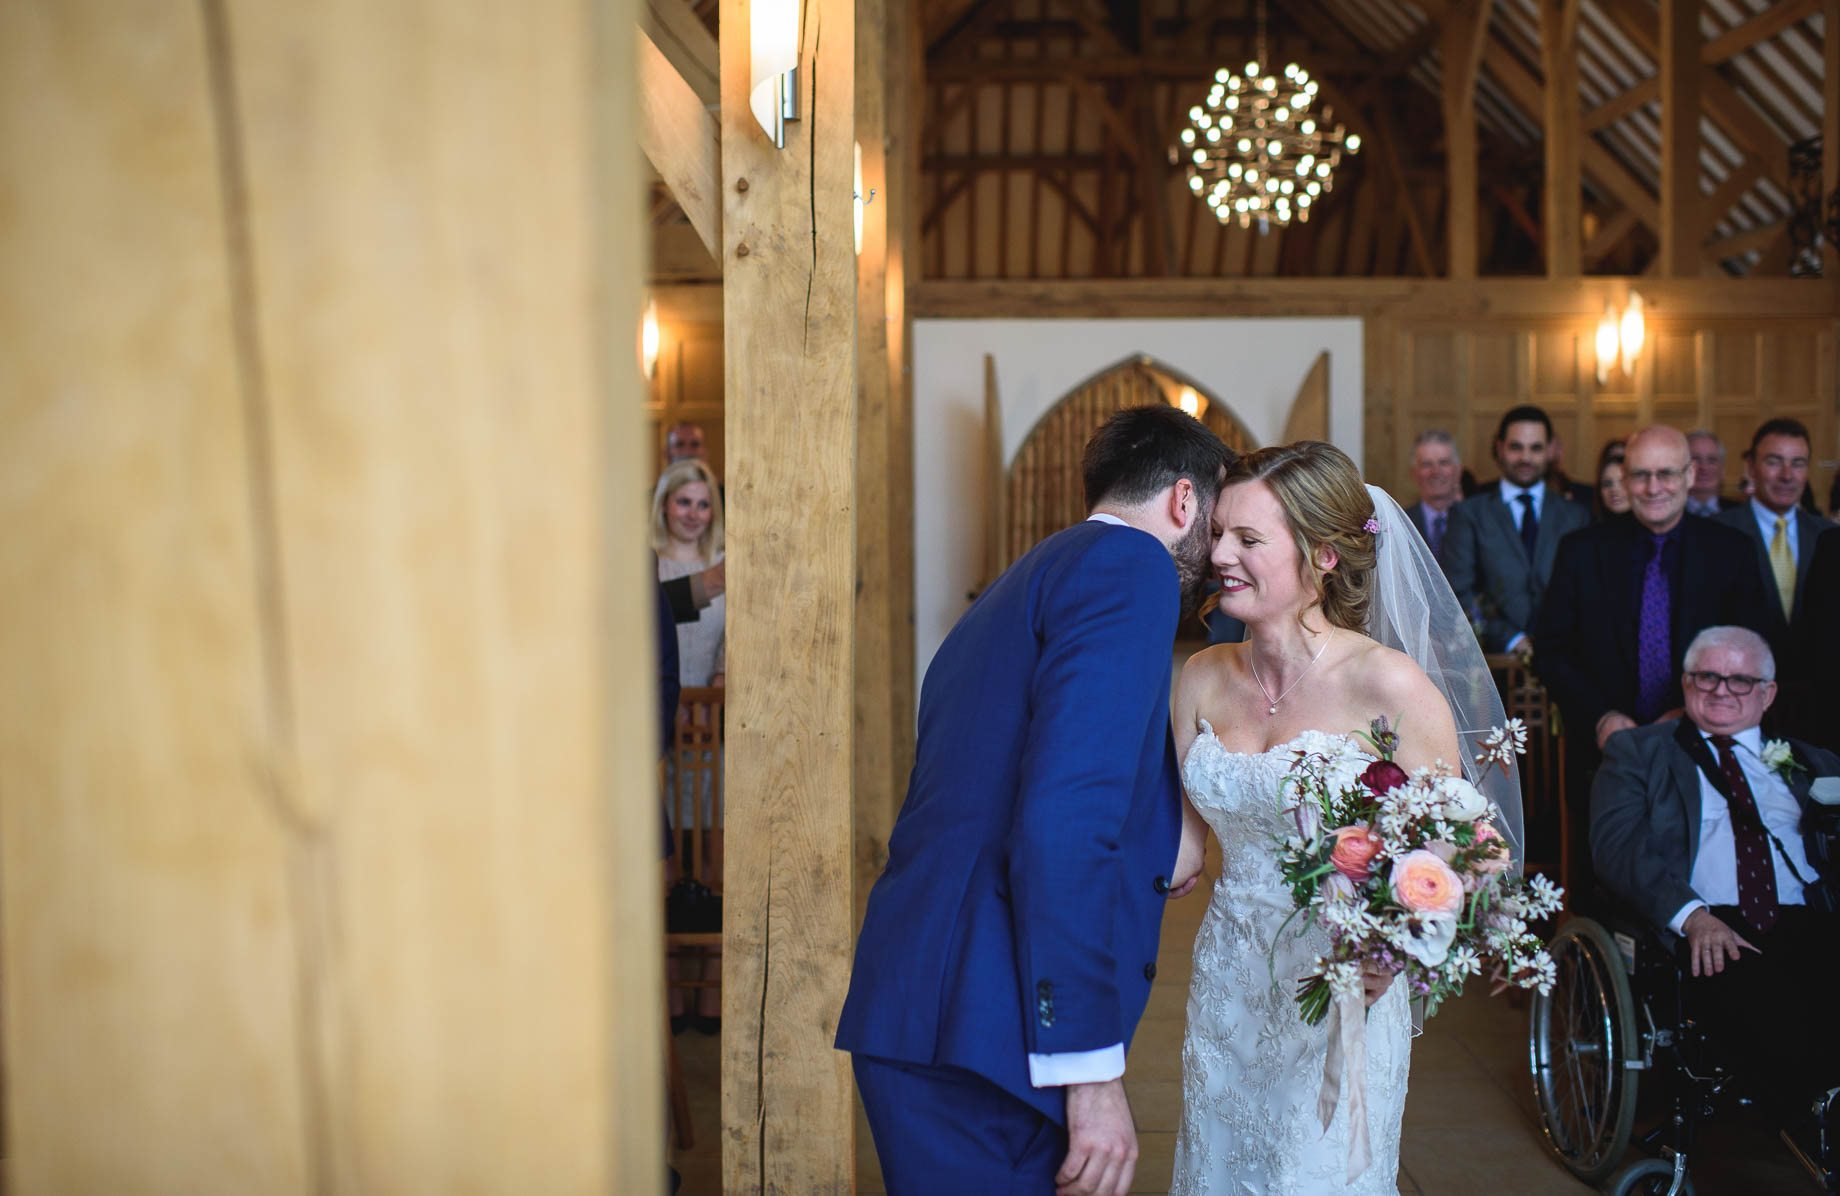 Rivervale Barn wedding photography by Guy Collier - Claire and Simon (56 of 133)